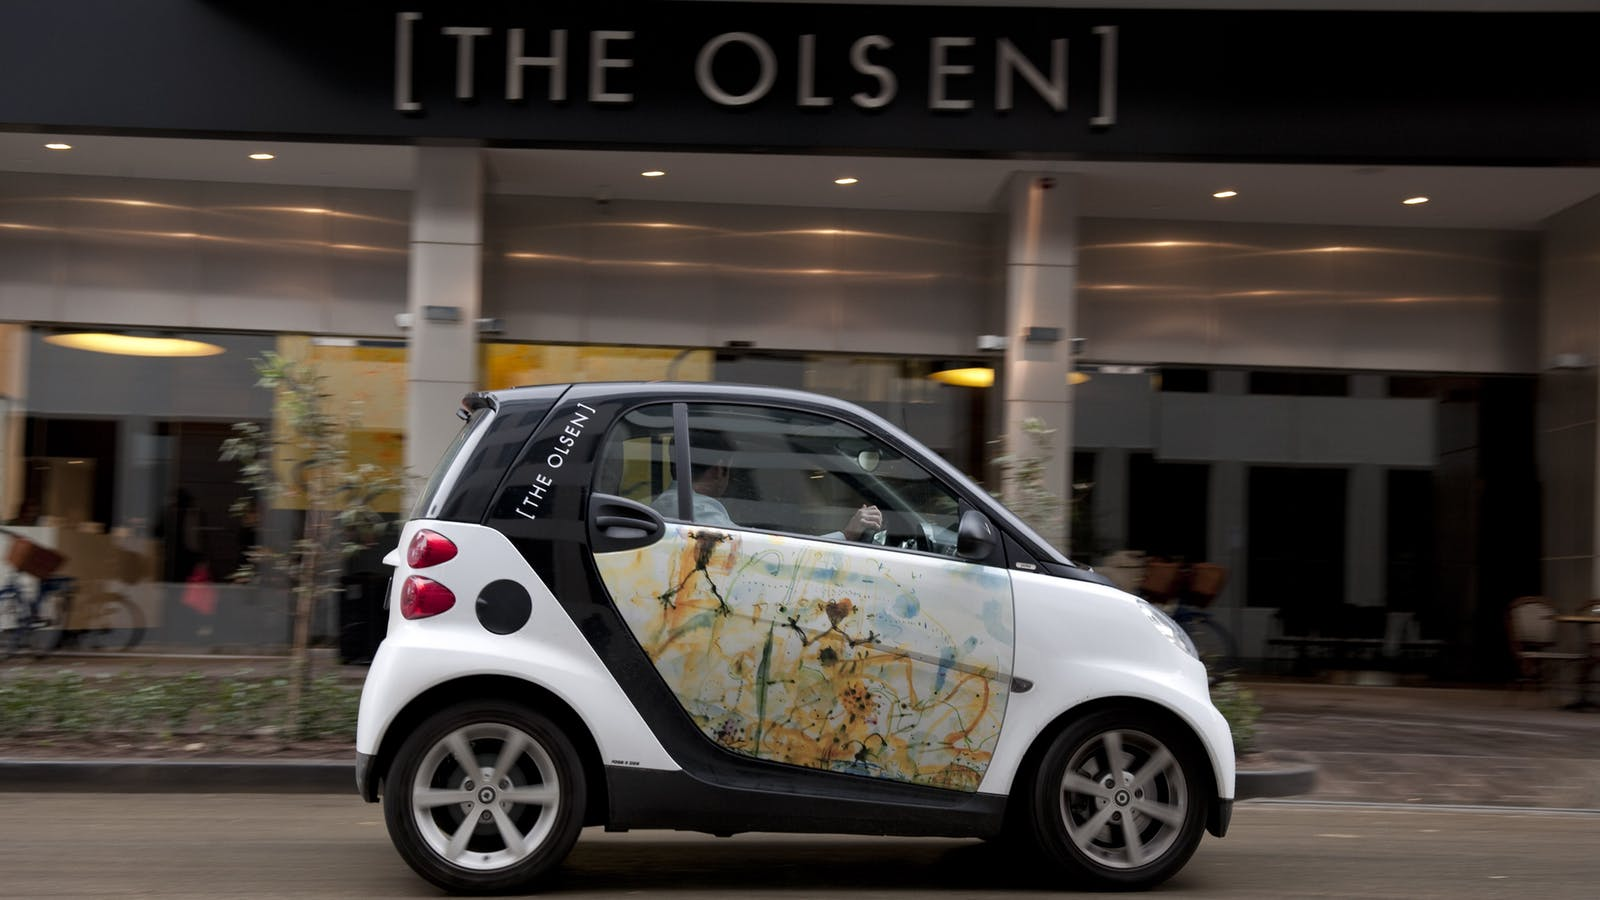 Smart Car Hire at The Olsen